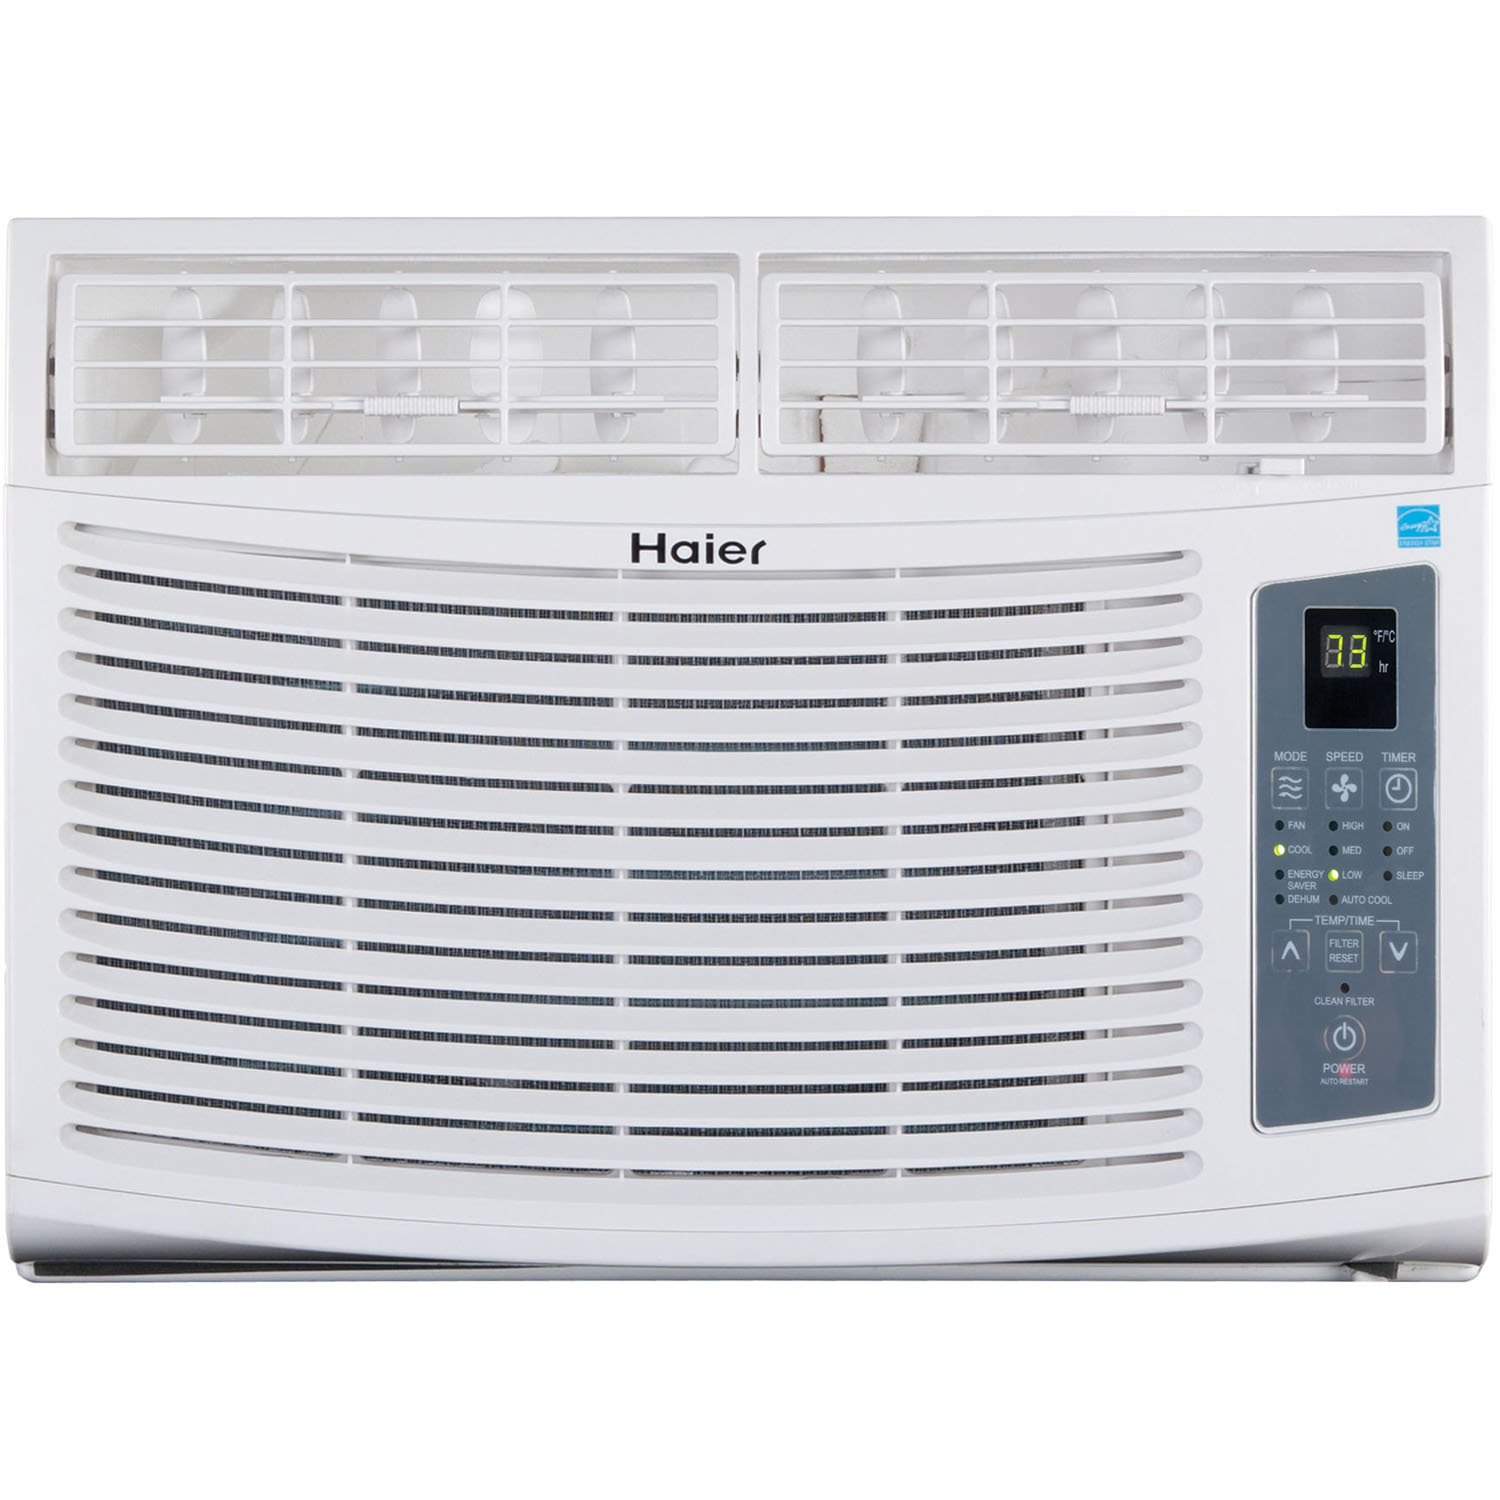 Top 10 Best Window Air Conditioners Reviews 2016 2017 on Flipboard #747E44